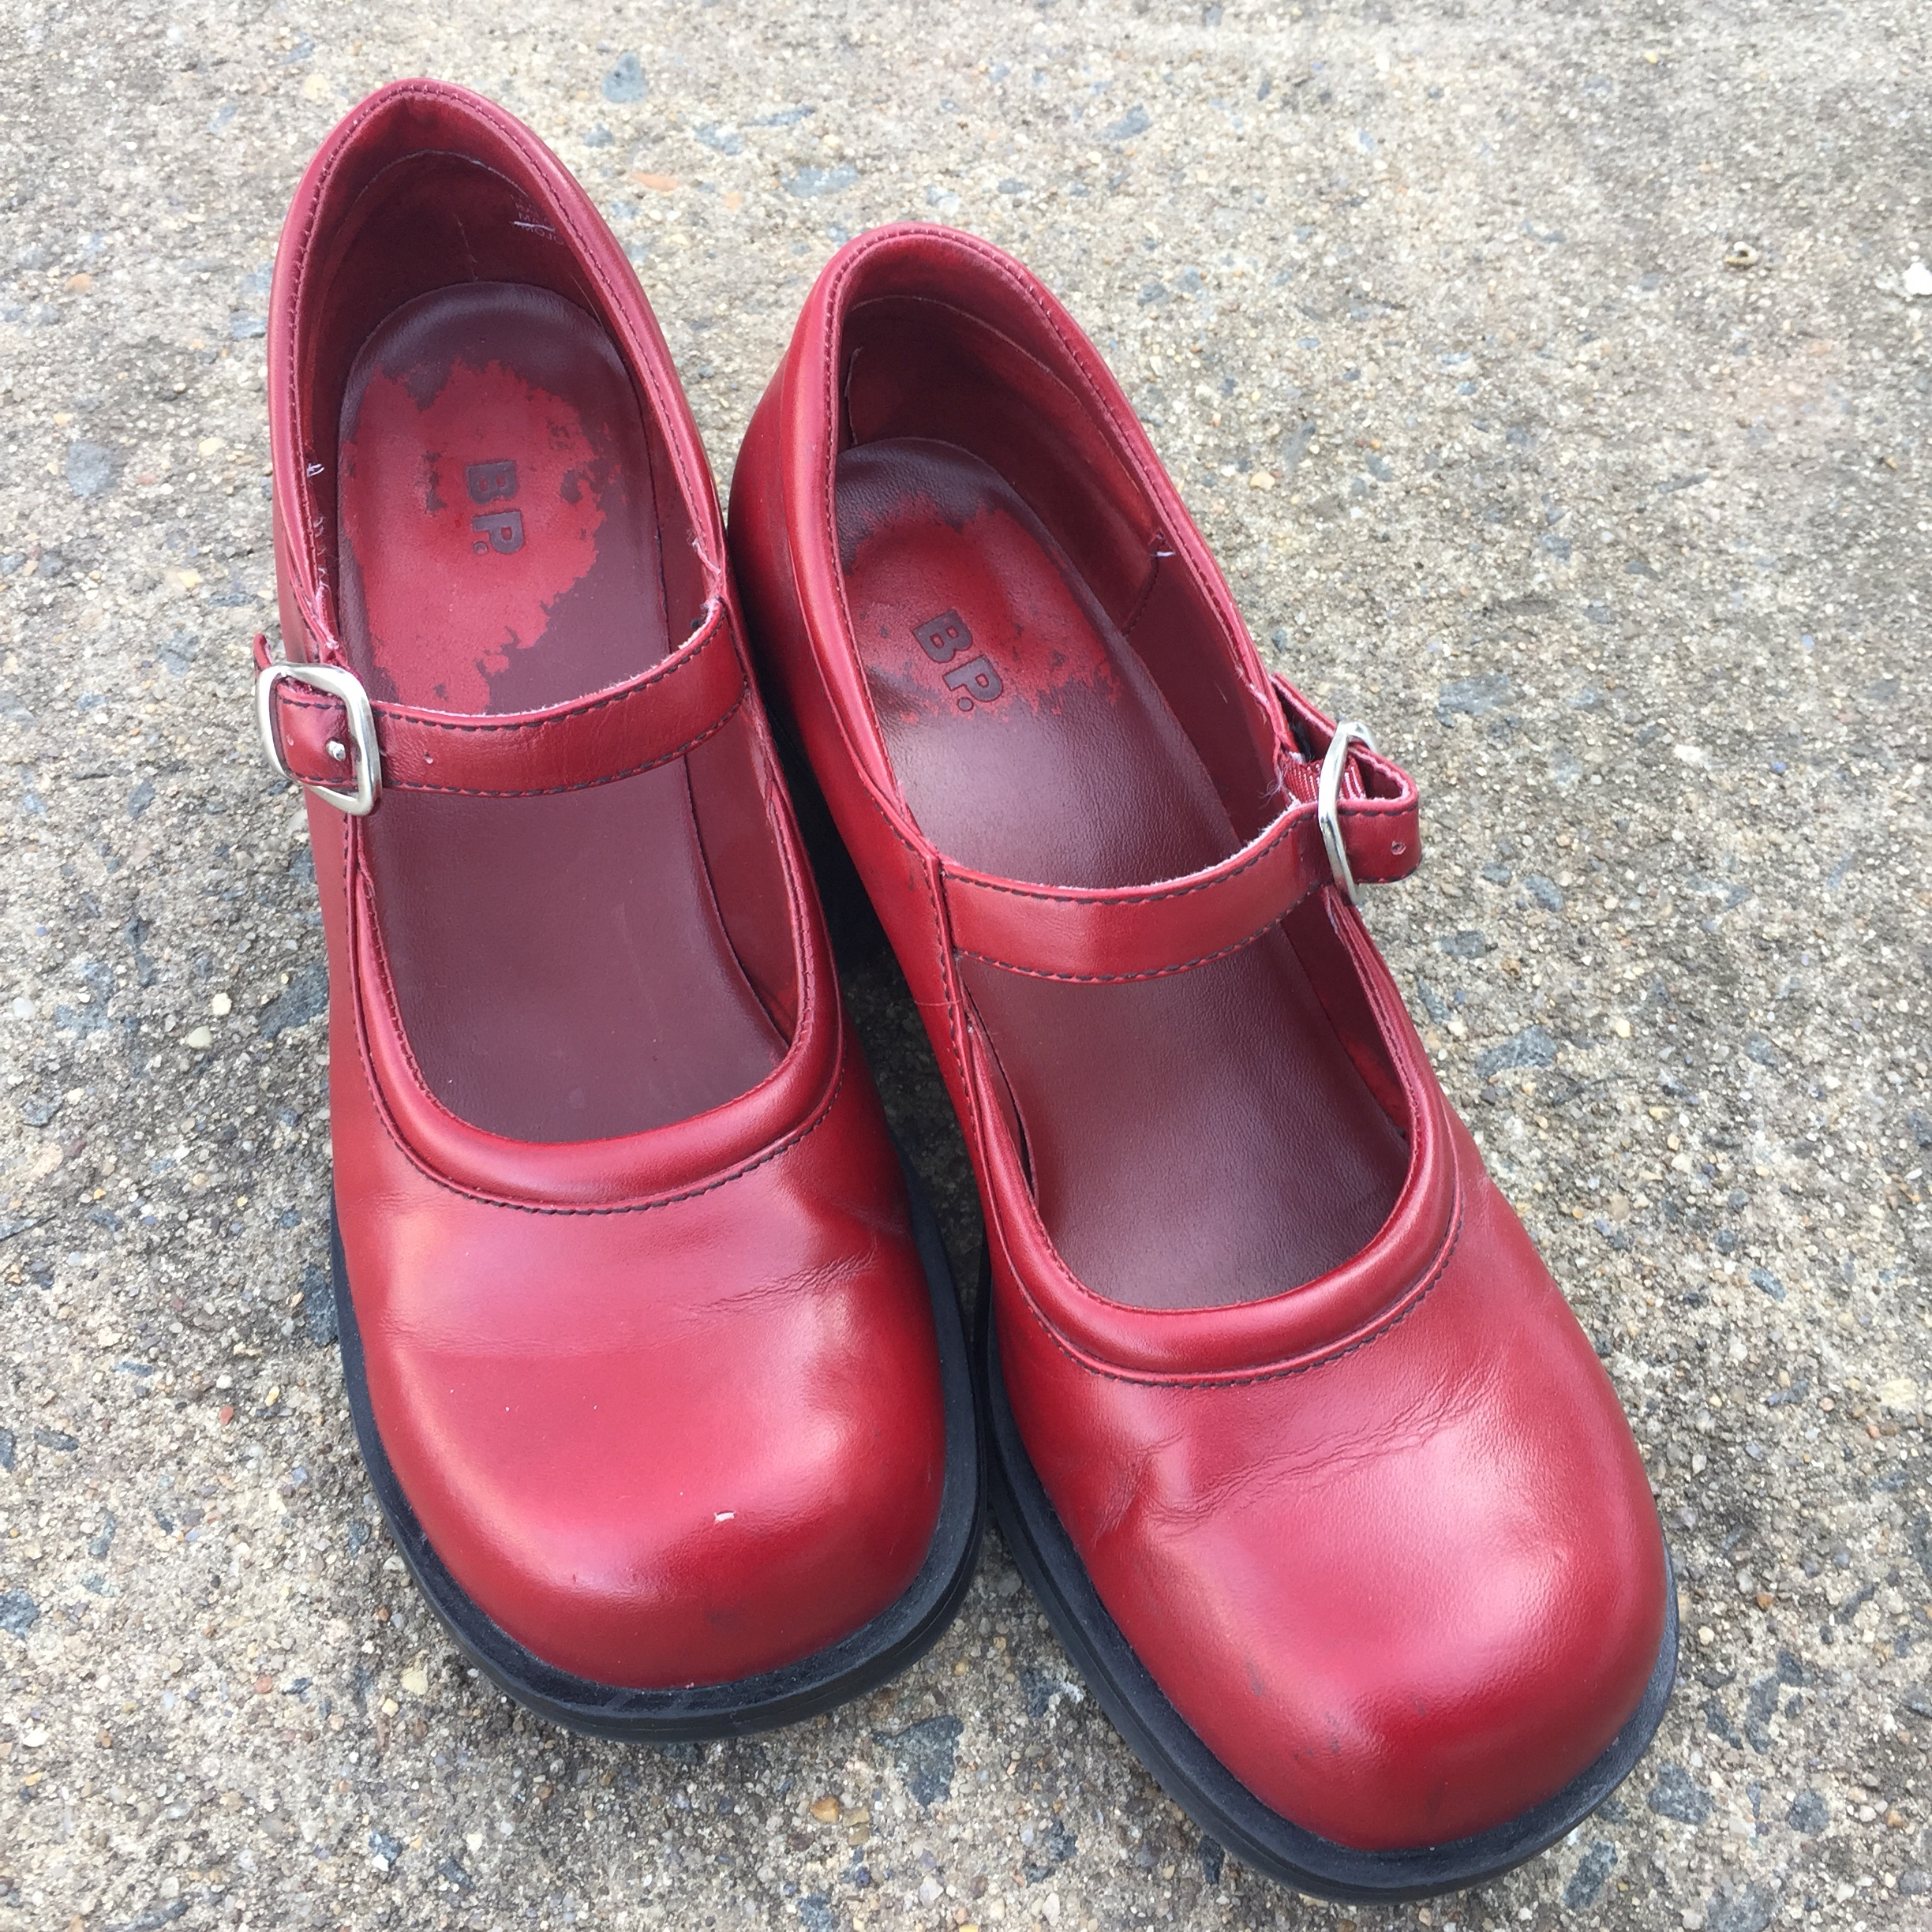 Cheap Red Mary Jane High Heels, find Red Mary Jane High